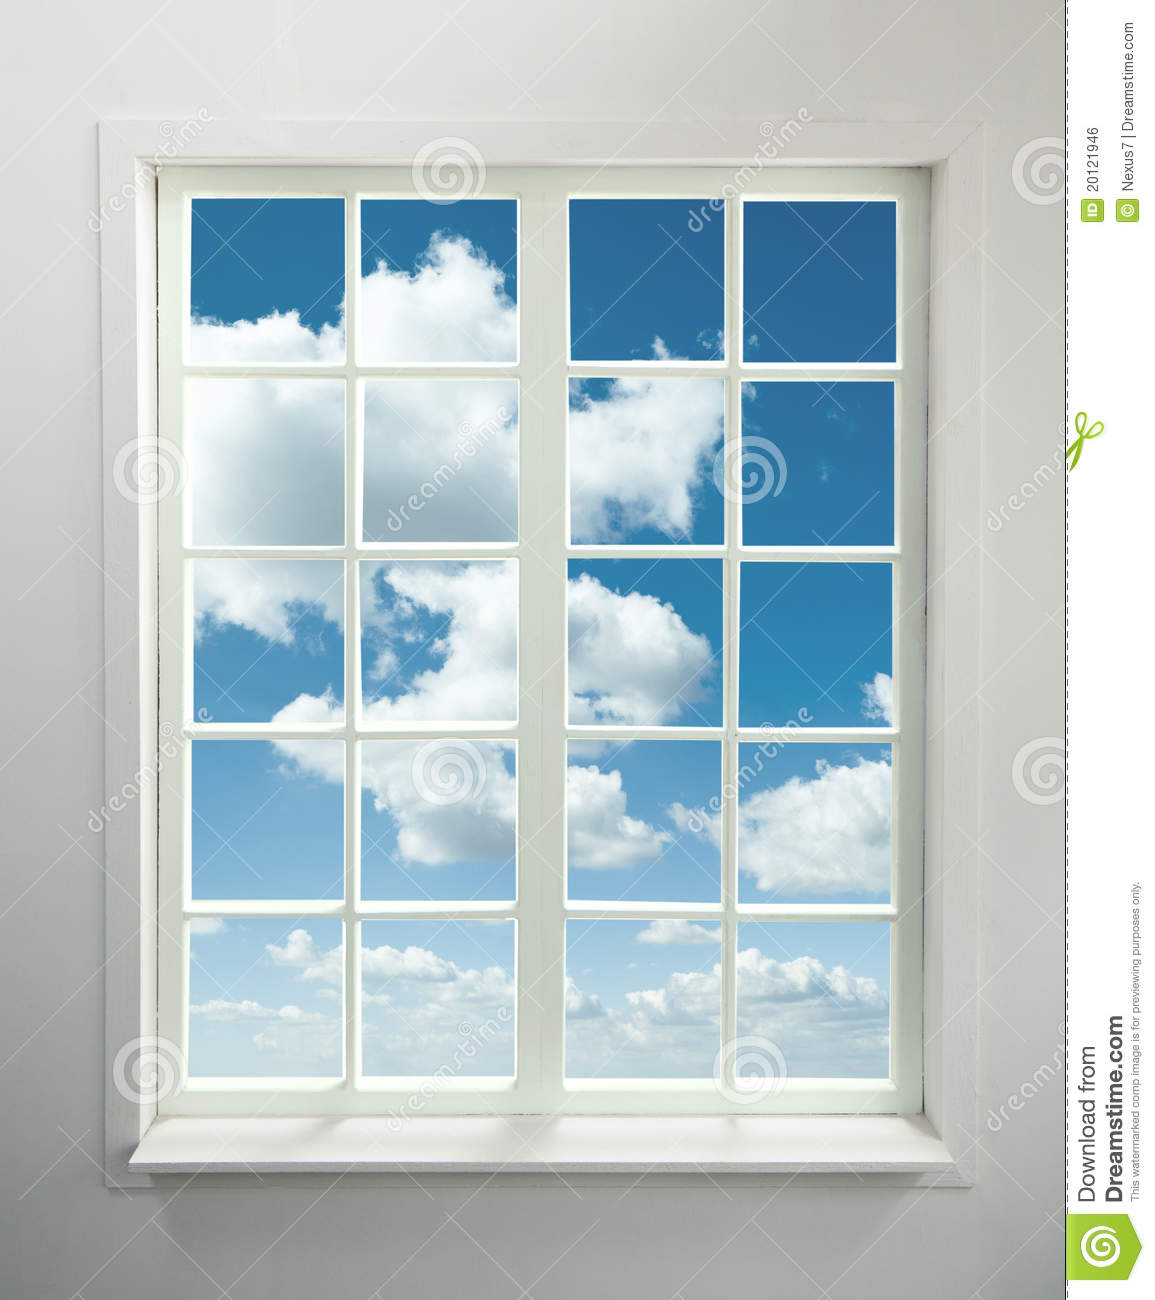 Window and sky royalty free stock image image 20121946 for Glass windows